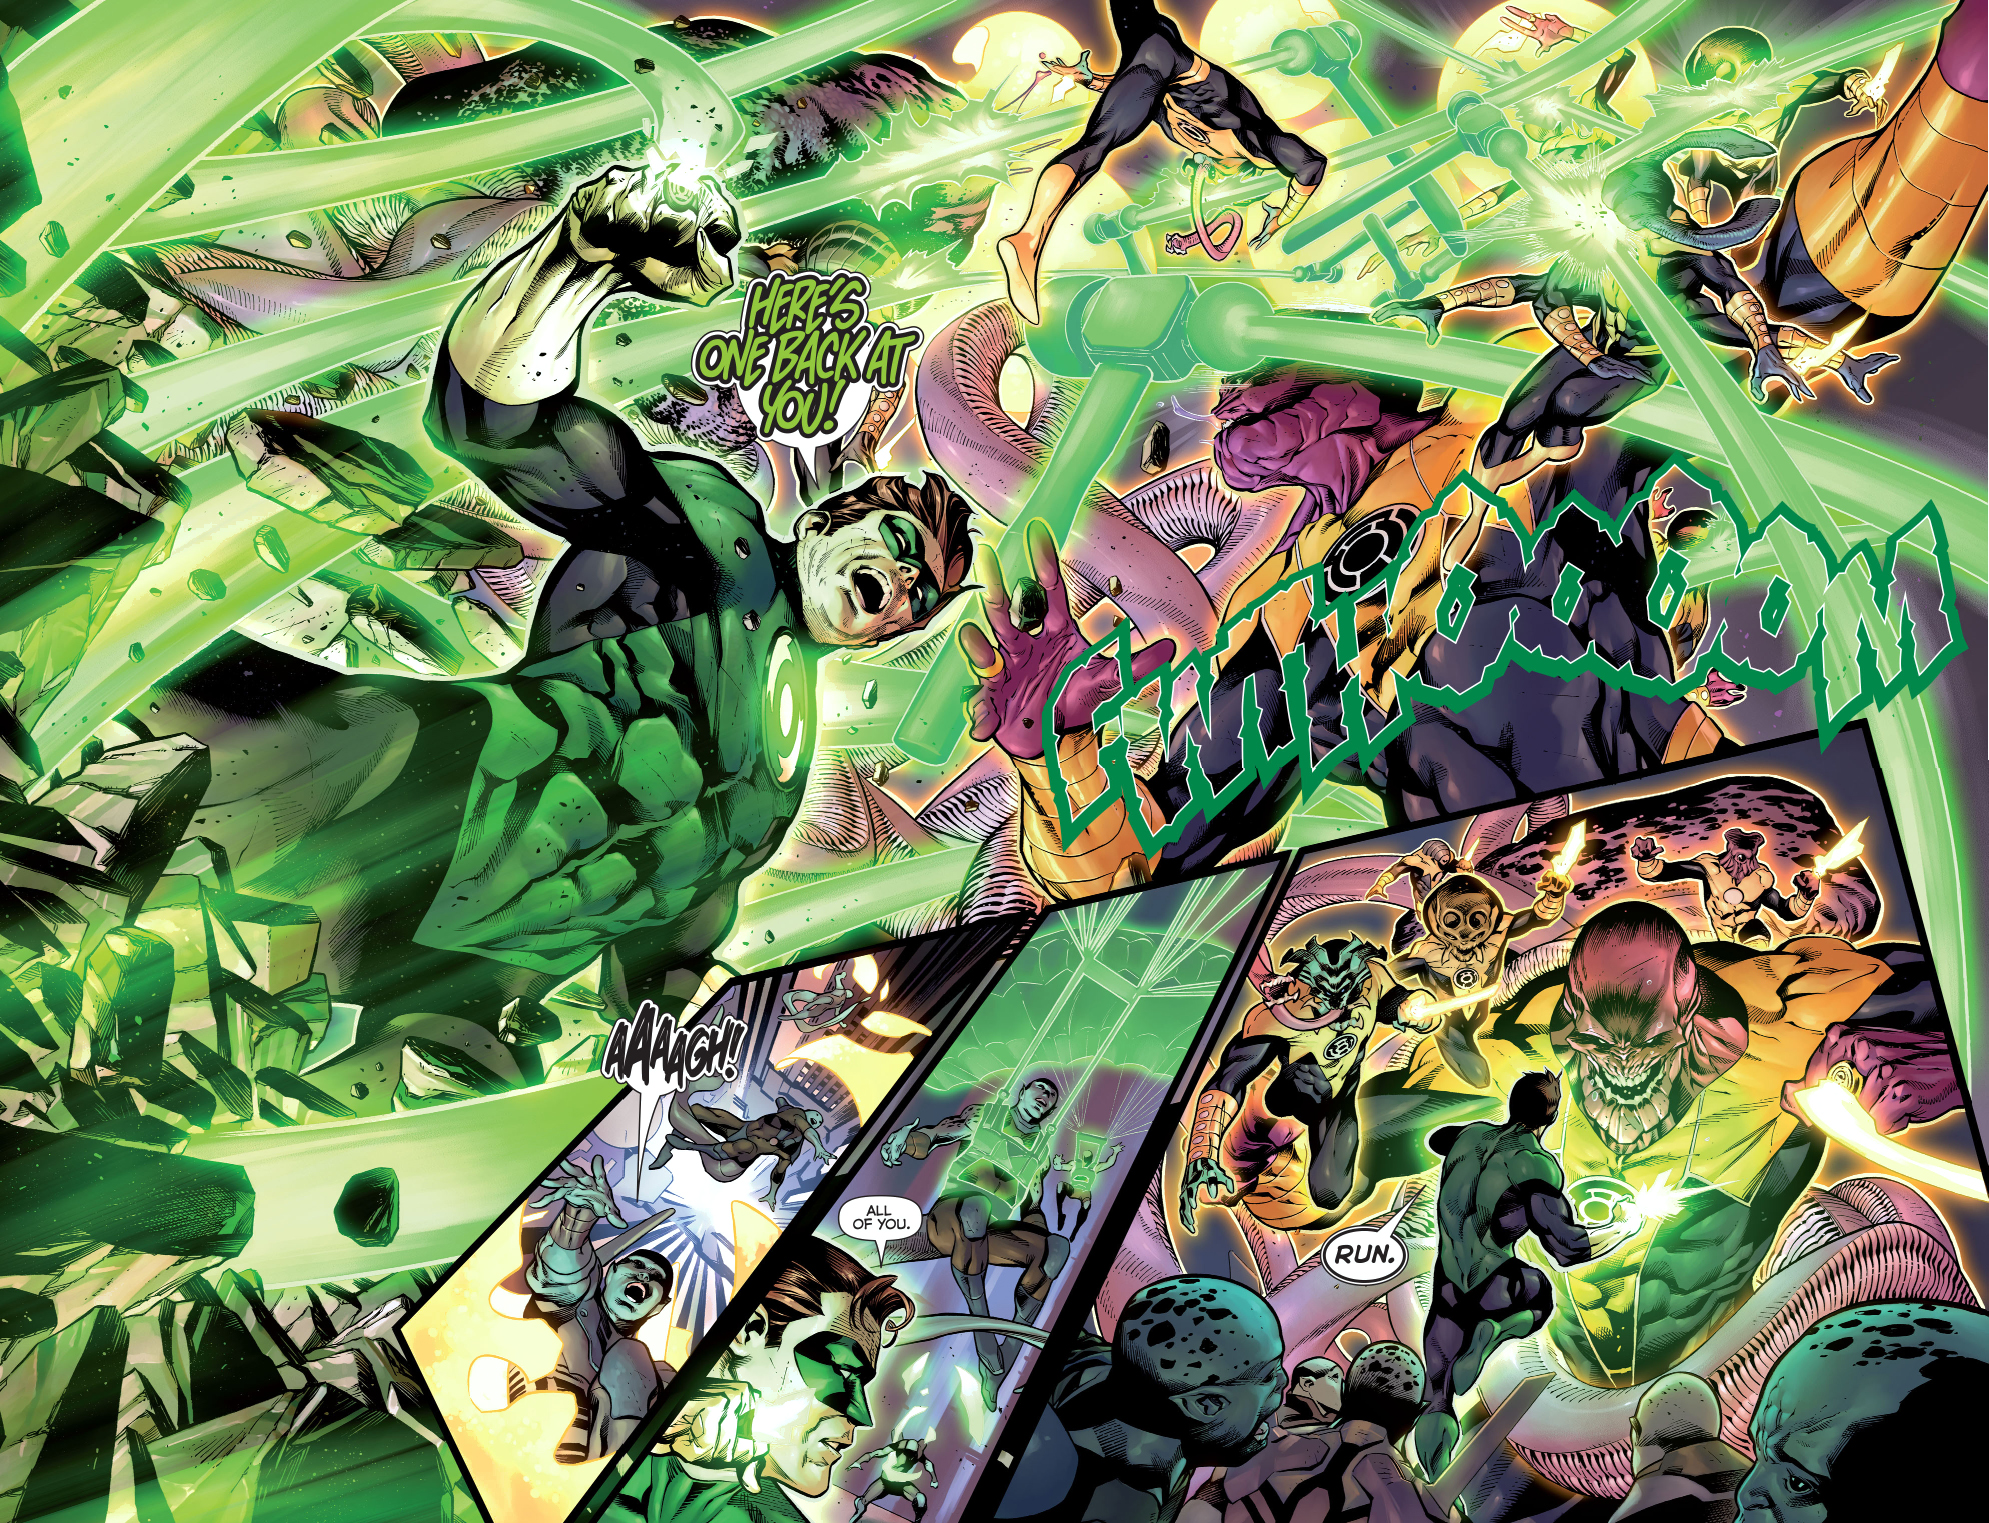 green-lantern-hal-jordan-vs-the-sinestro-corps